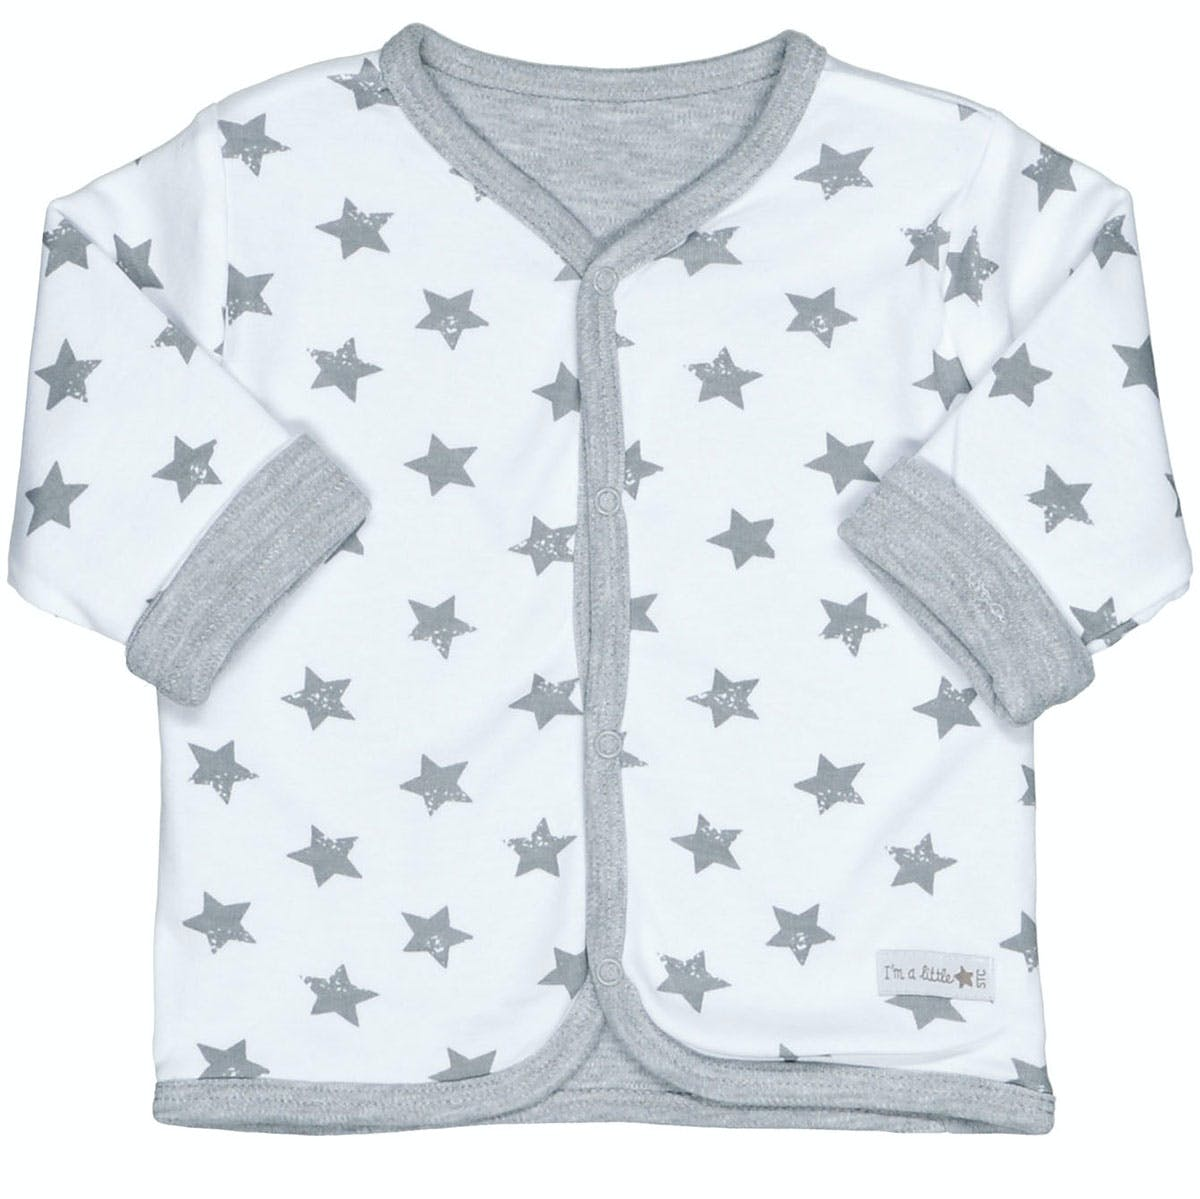 230062759-grey-star-aop__wendejacke__all